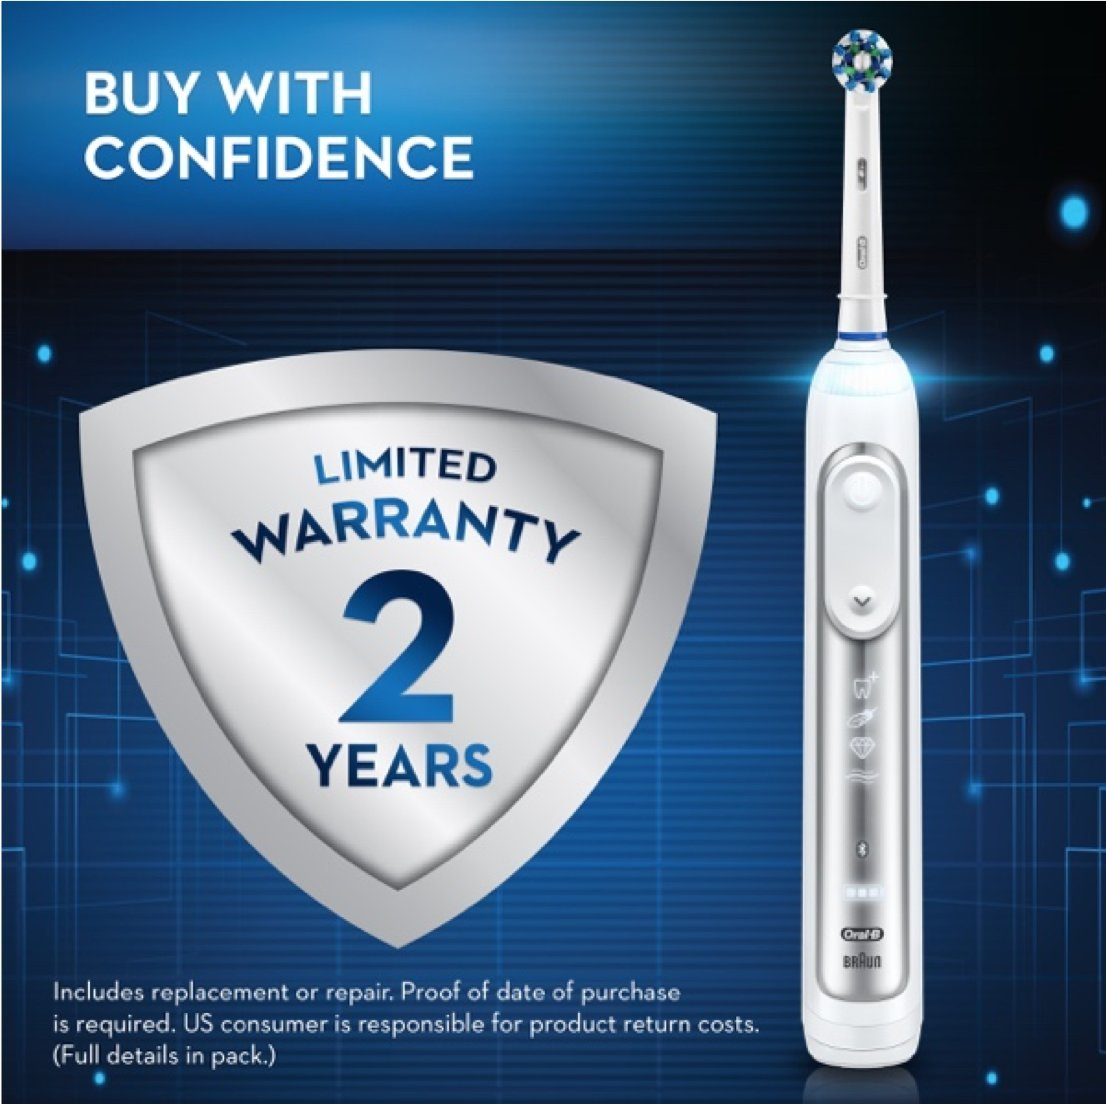 Oral-B Pro 7500 SmartSeries Electric Rechargeable Toothbrush with 3 Replacement Brush heads, Bluetooth Technology and Travel Case, Powered by Braun by Oral B (Image #12)